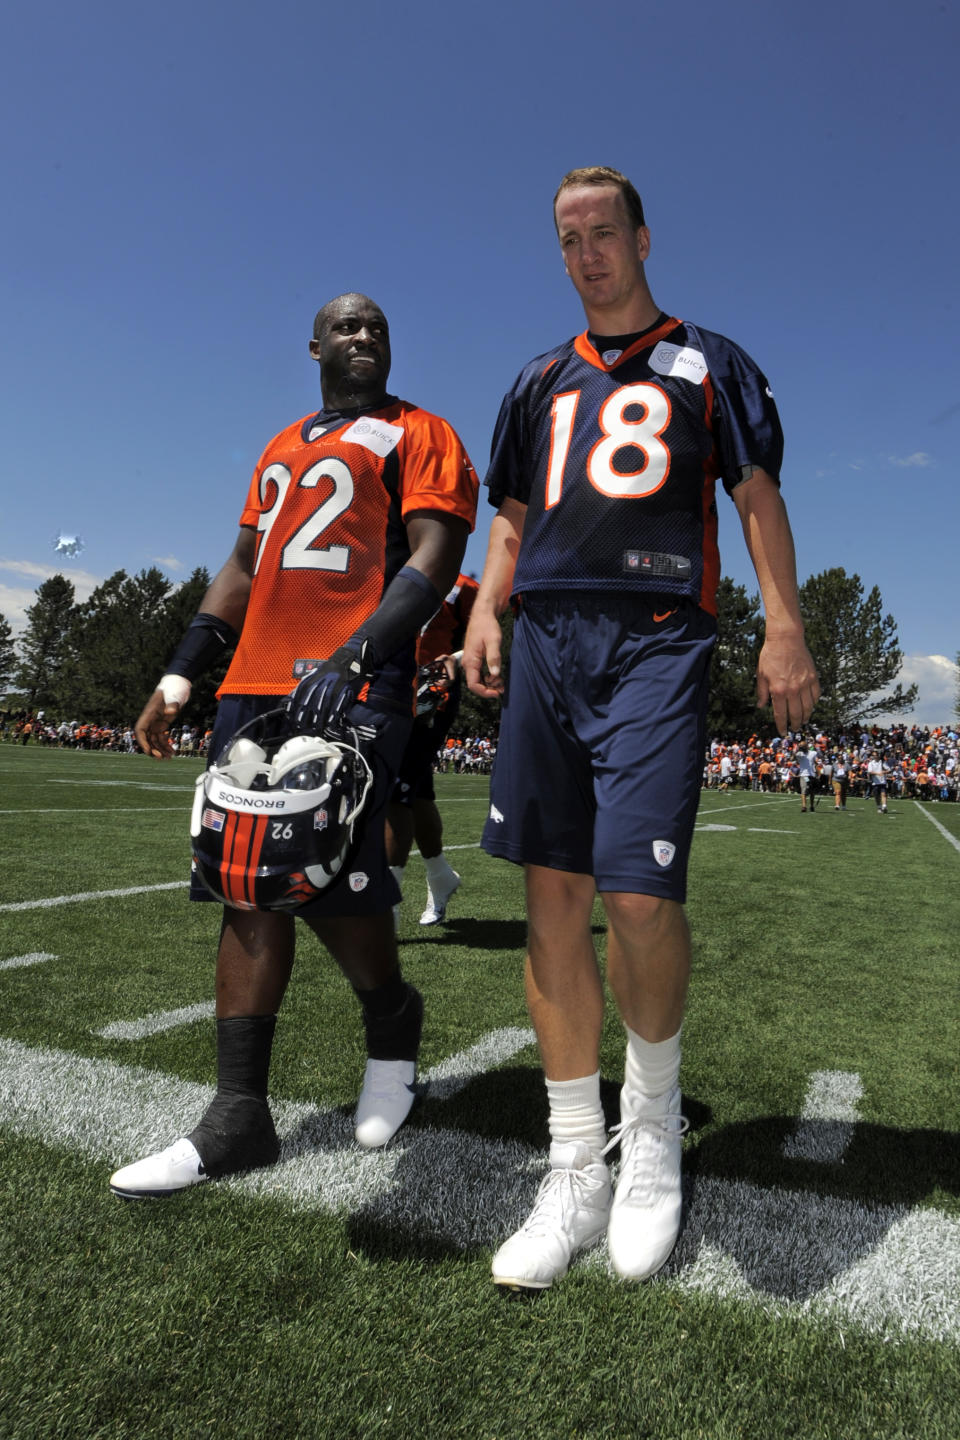 Denver Broncos quarterback Peyton Manning (18) and Elvis Dumervil (92) talks as the leave the practice field following the opening session of Denver Broncos NFL football training camp in Englewood, Colo., Thursday, July 26, 2012. (AP Photo/Jack Dempsey)